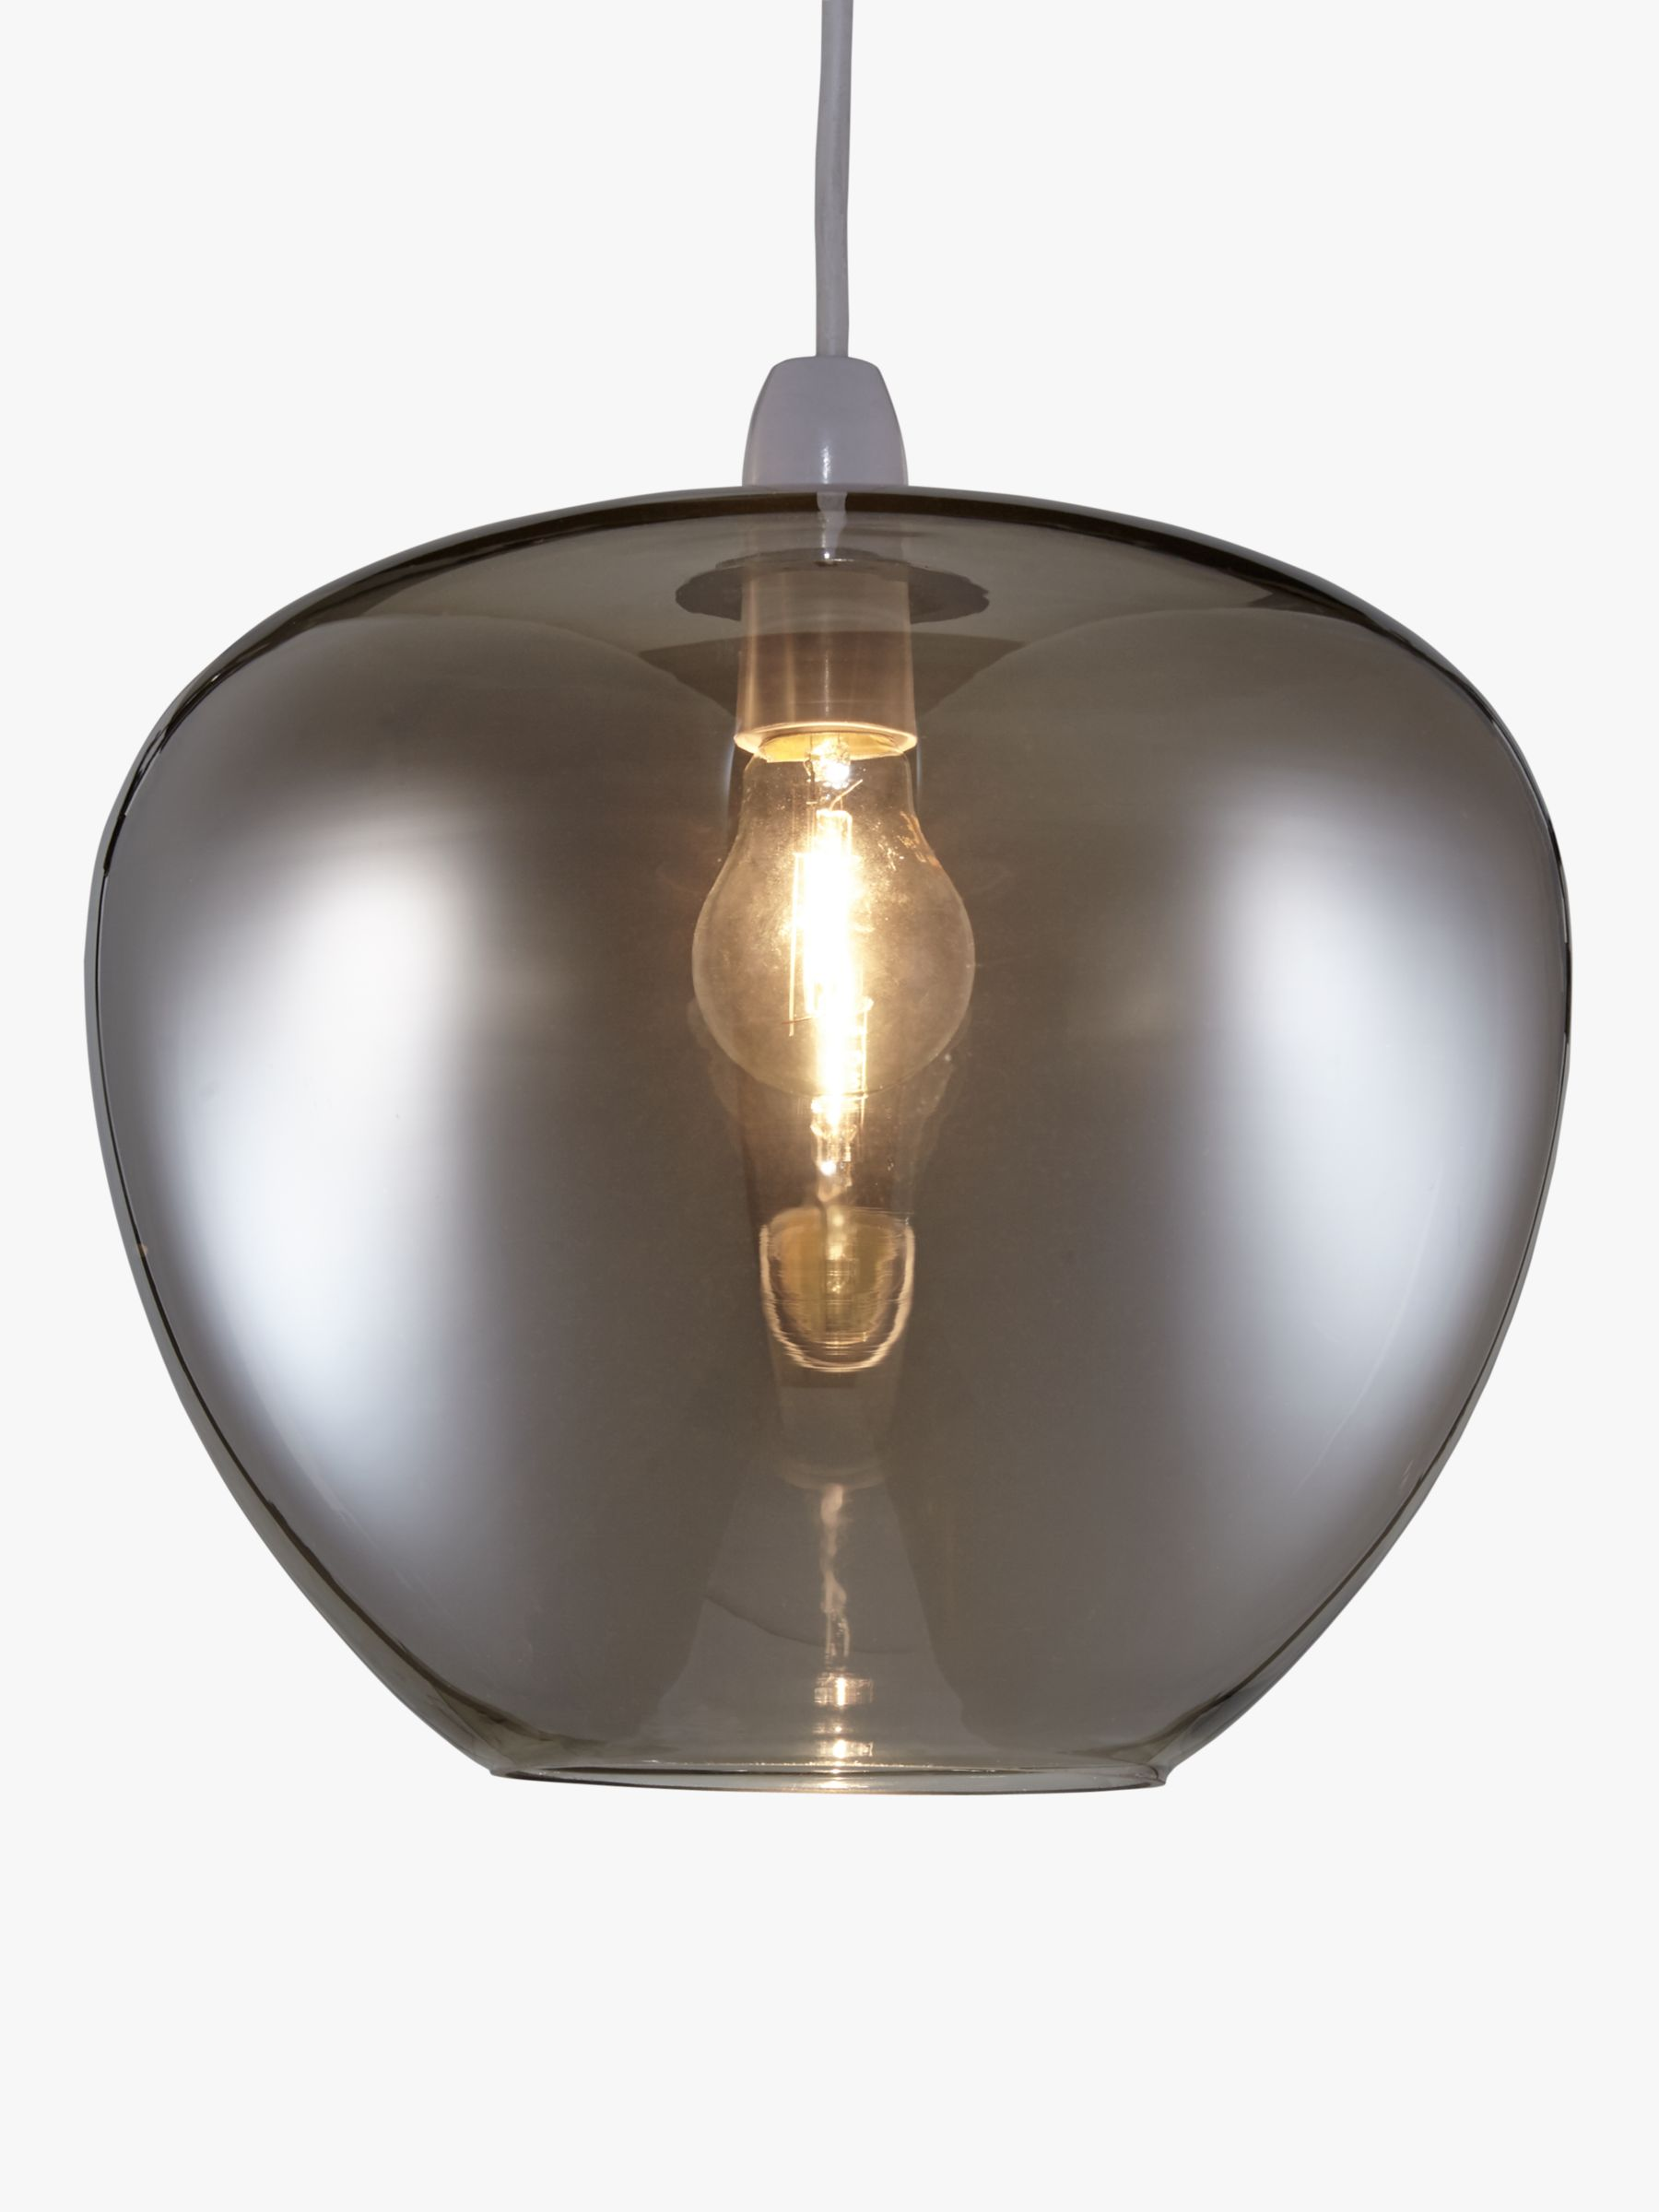 Glass Bulb Droplet Lampshade Fits John Lewis Jensen cluster light Clear